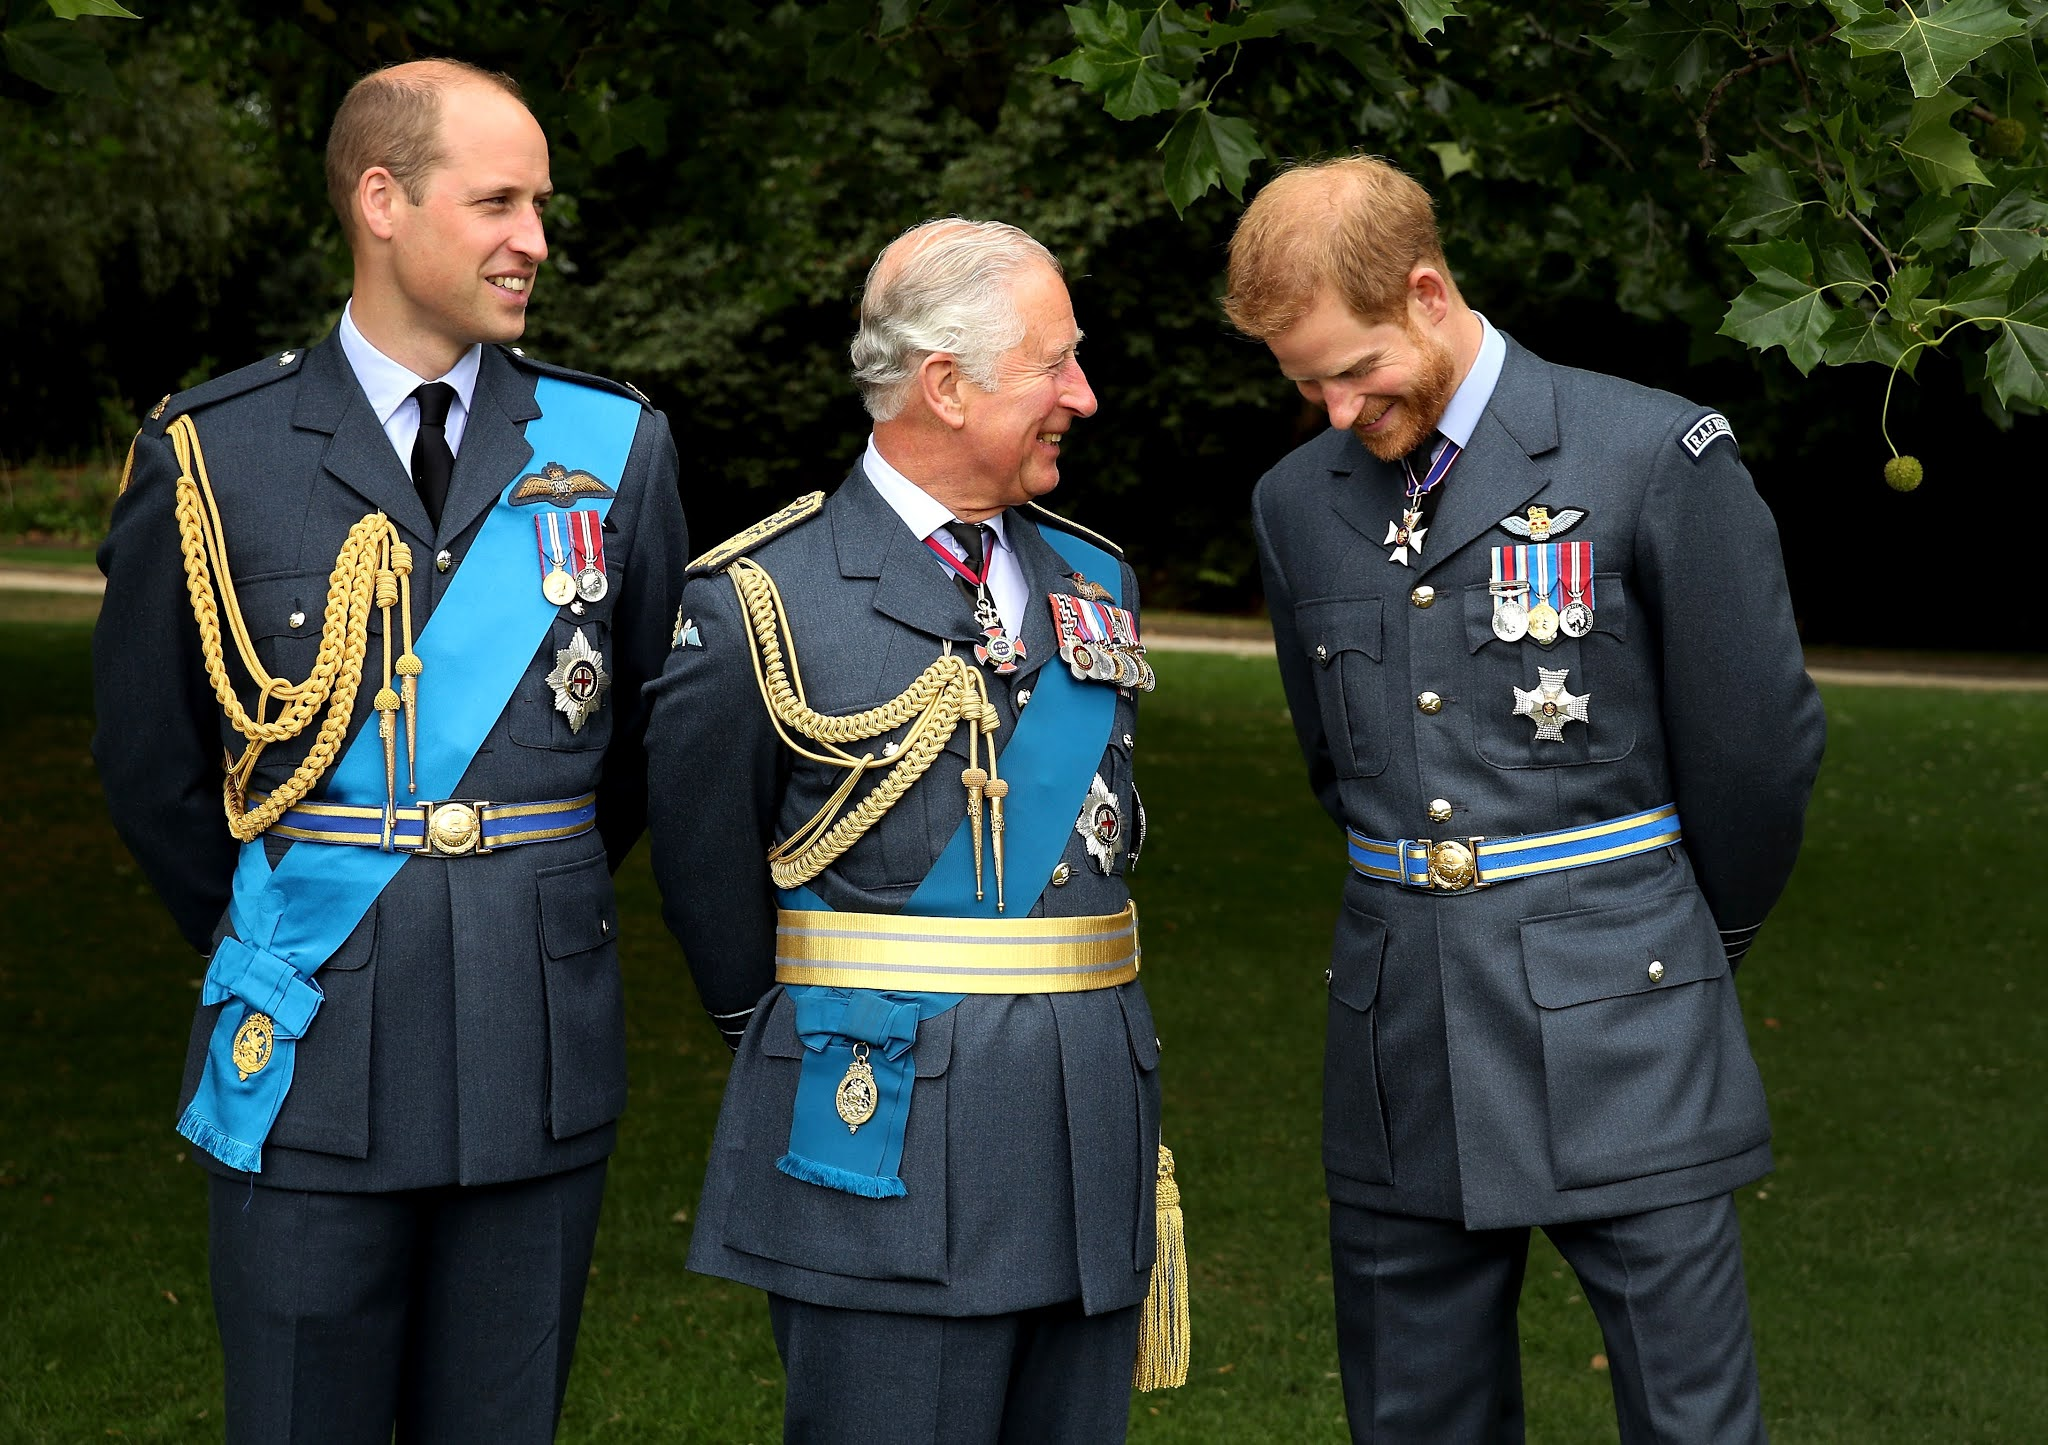 Prince Charles and Prince William talked to Prince Harry, why it is a news